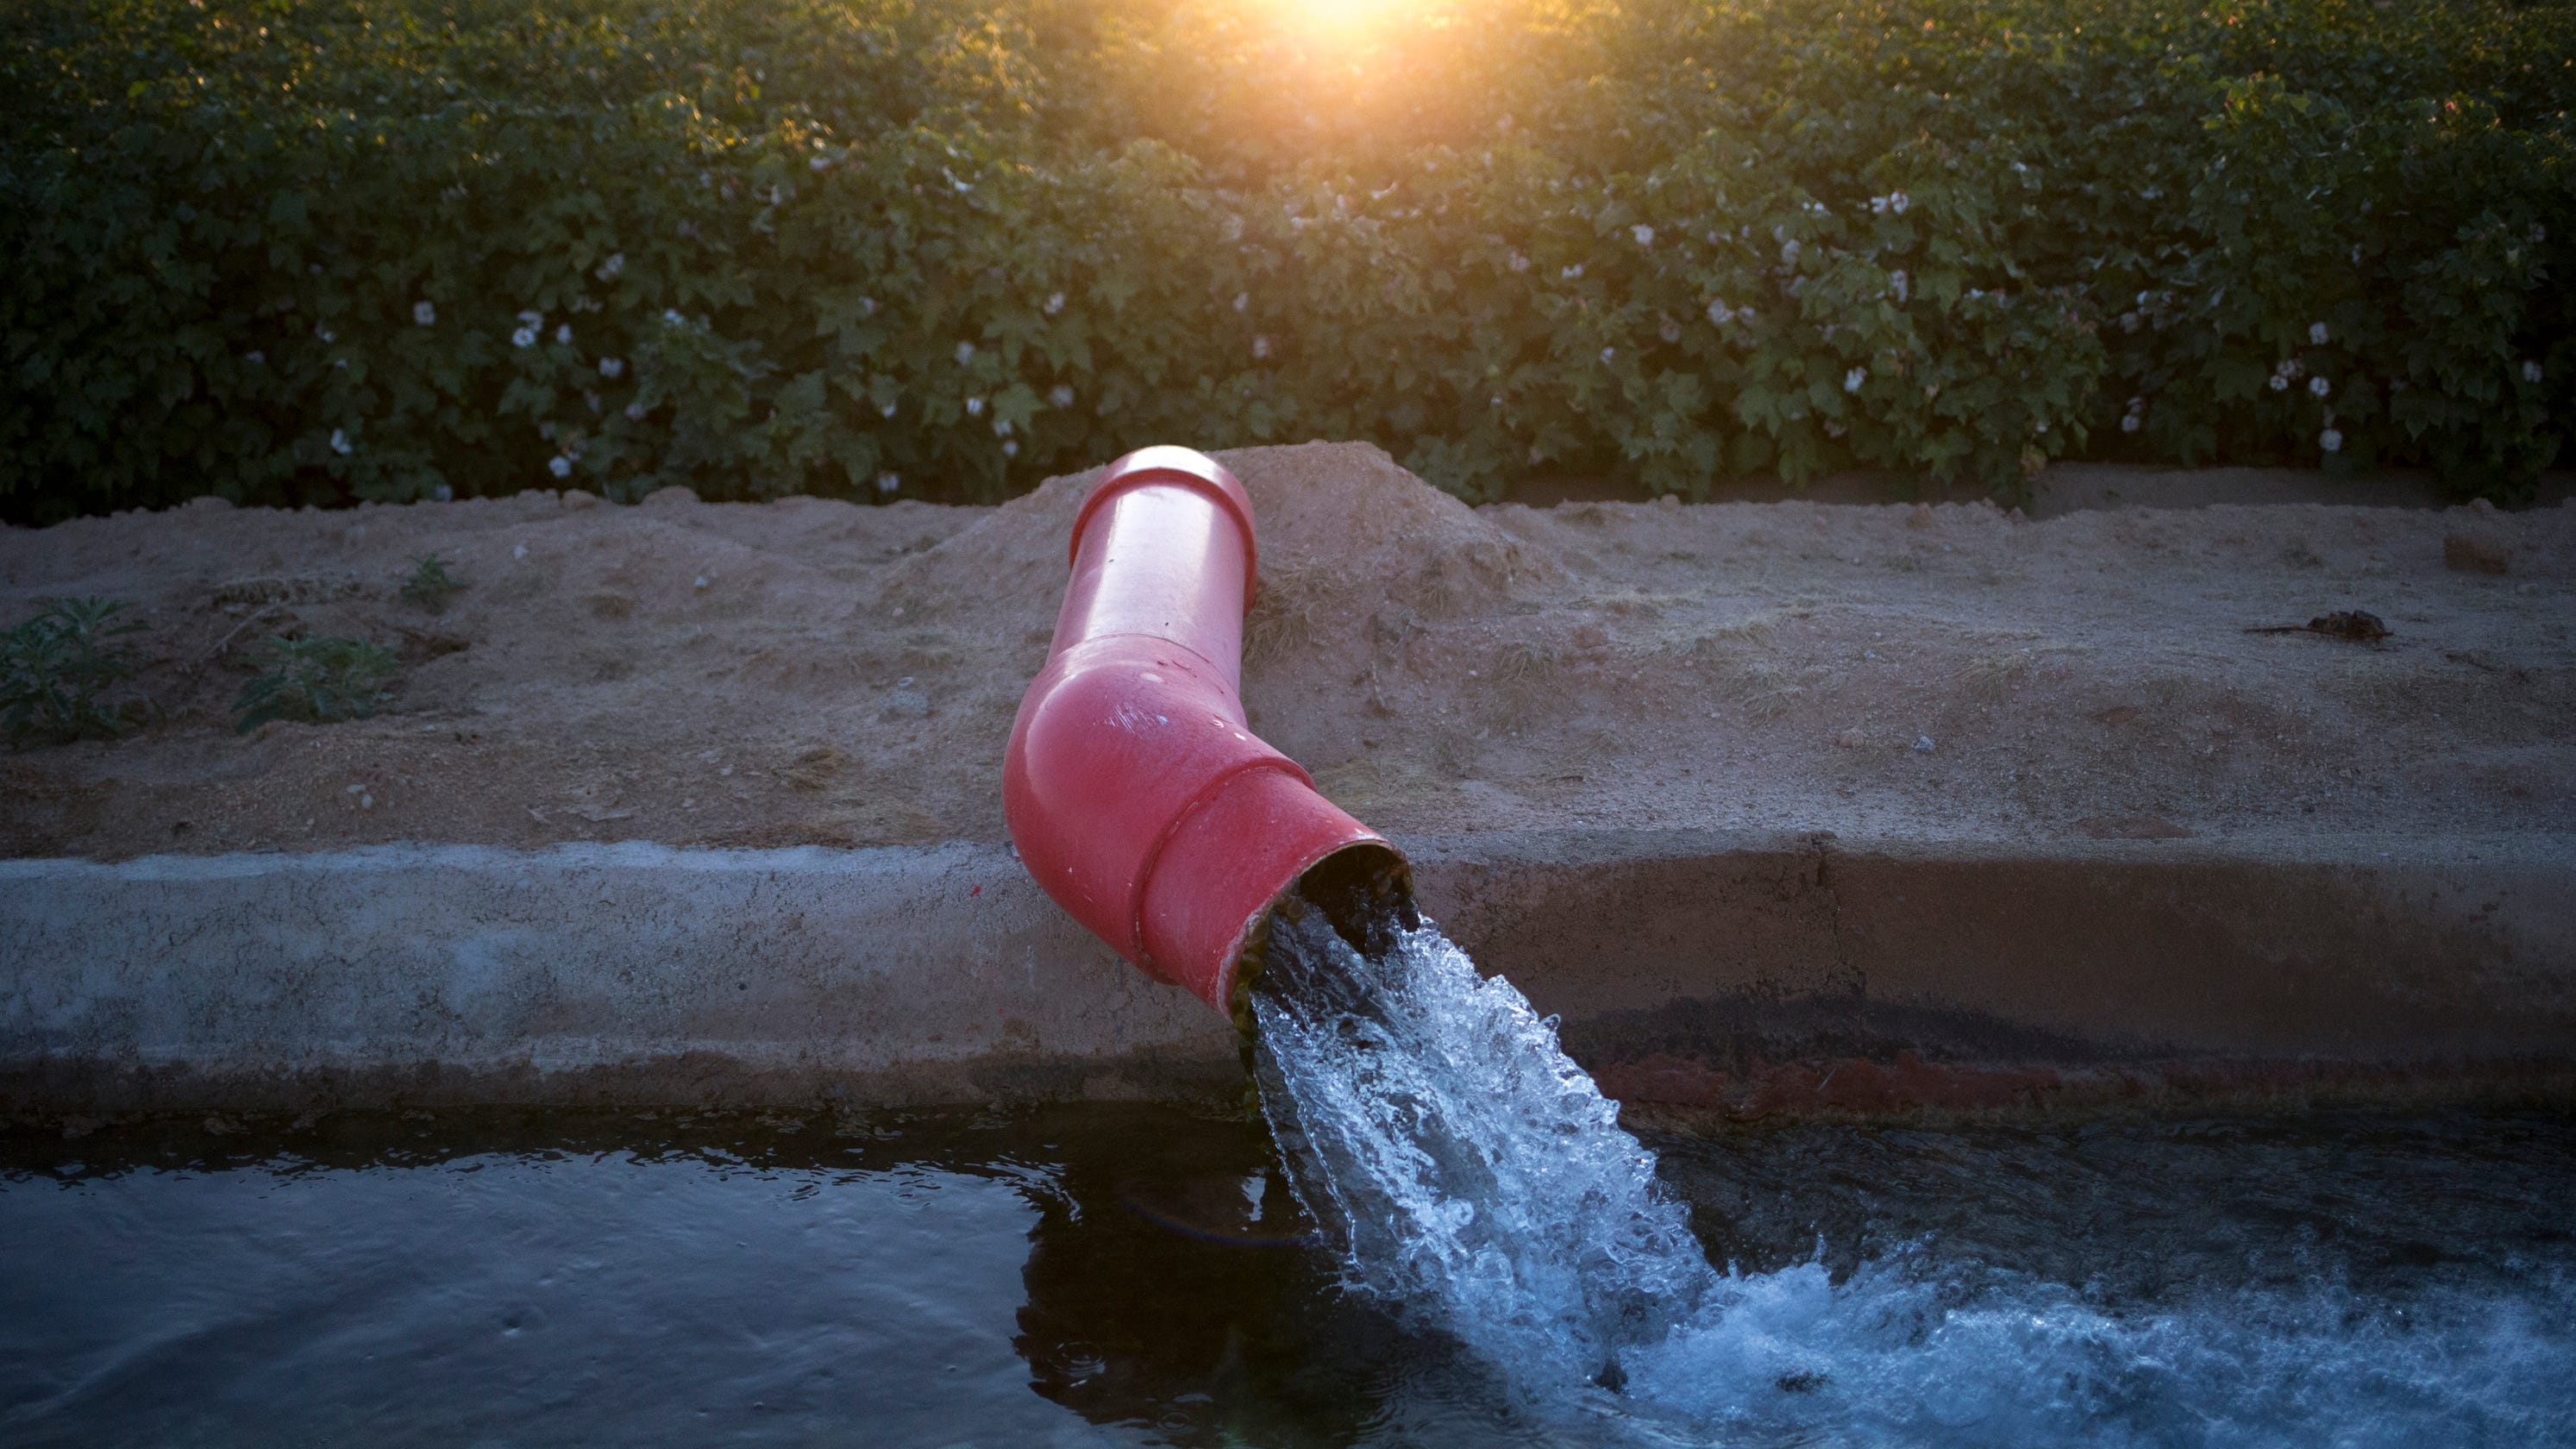 As Arizona weighs water reforms, farms push back against reporting pumping data - AZCentral